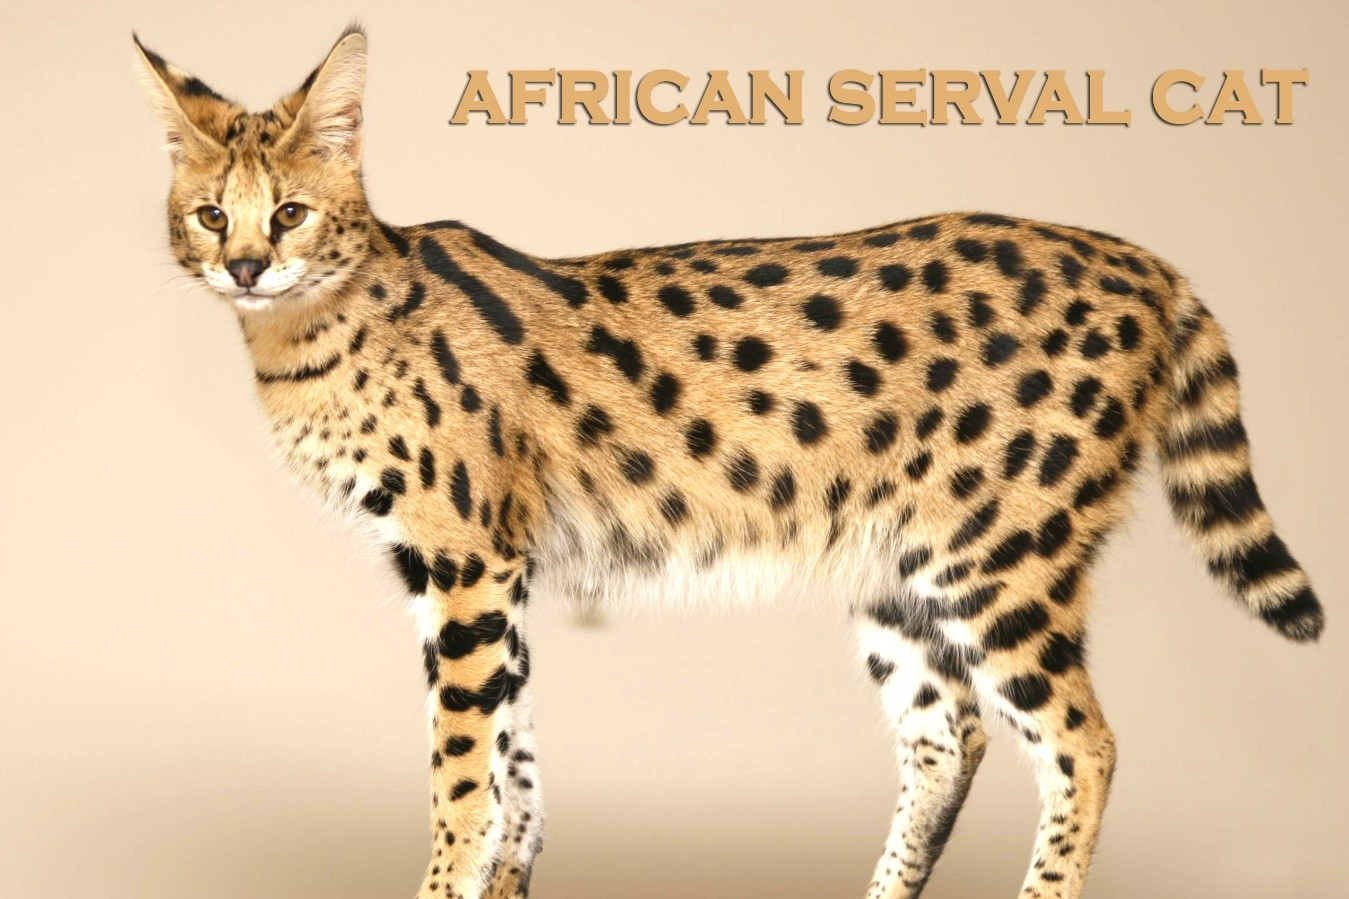 15 Things You Need to Know If You Want to Own a Serval Cat. #14 Might Change Your Mind